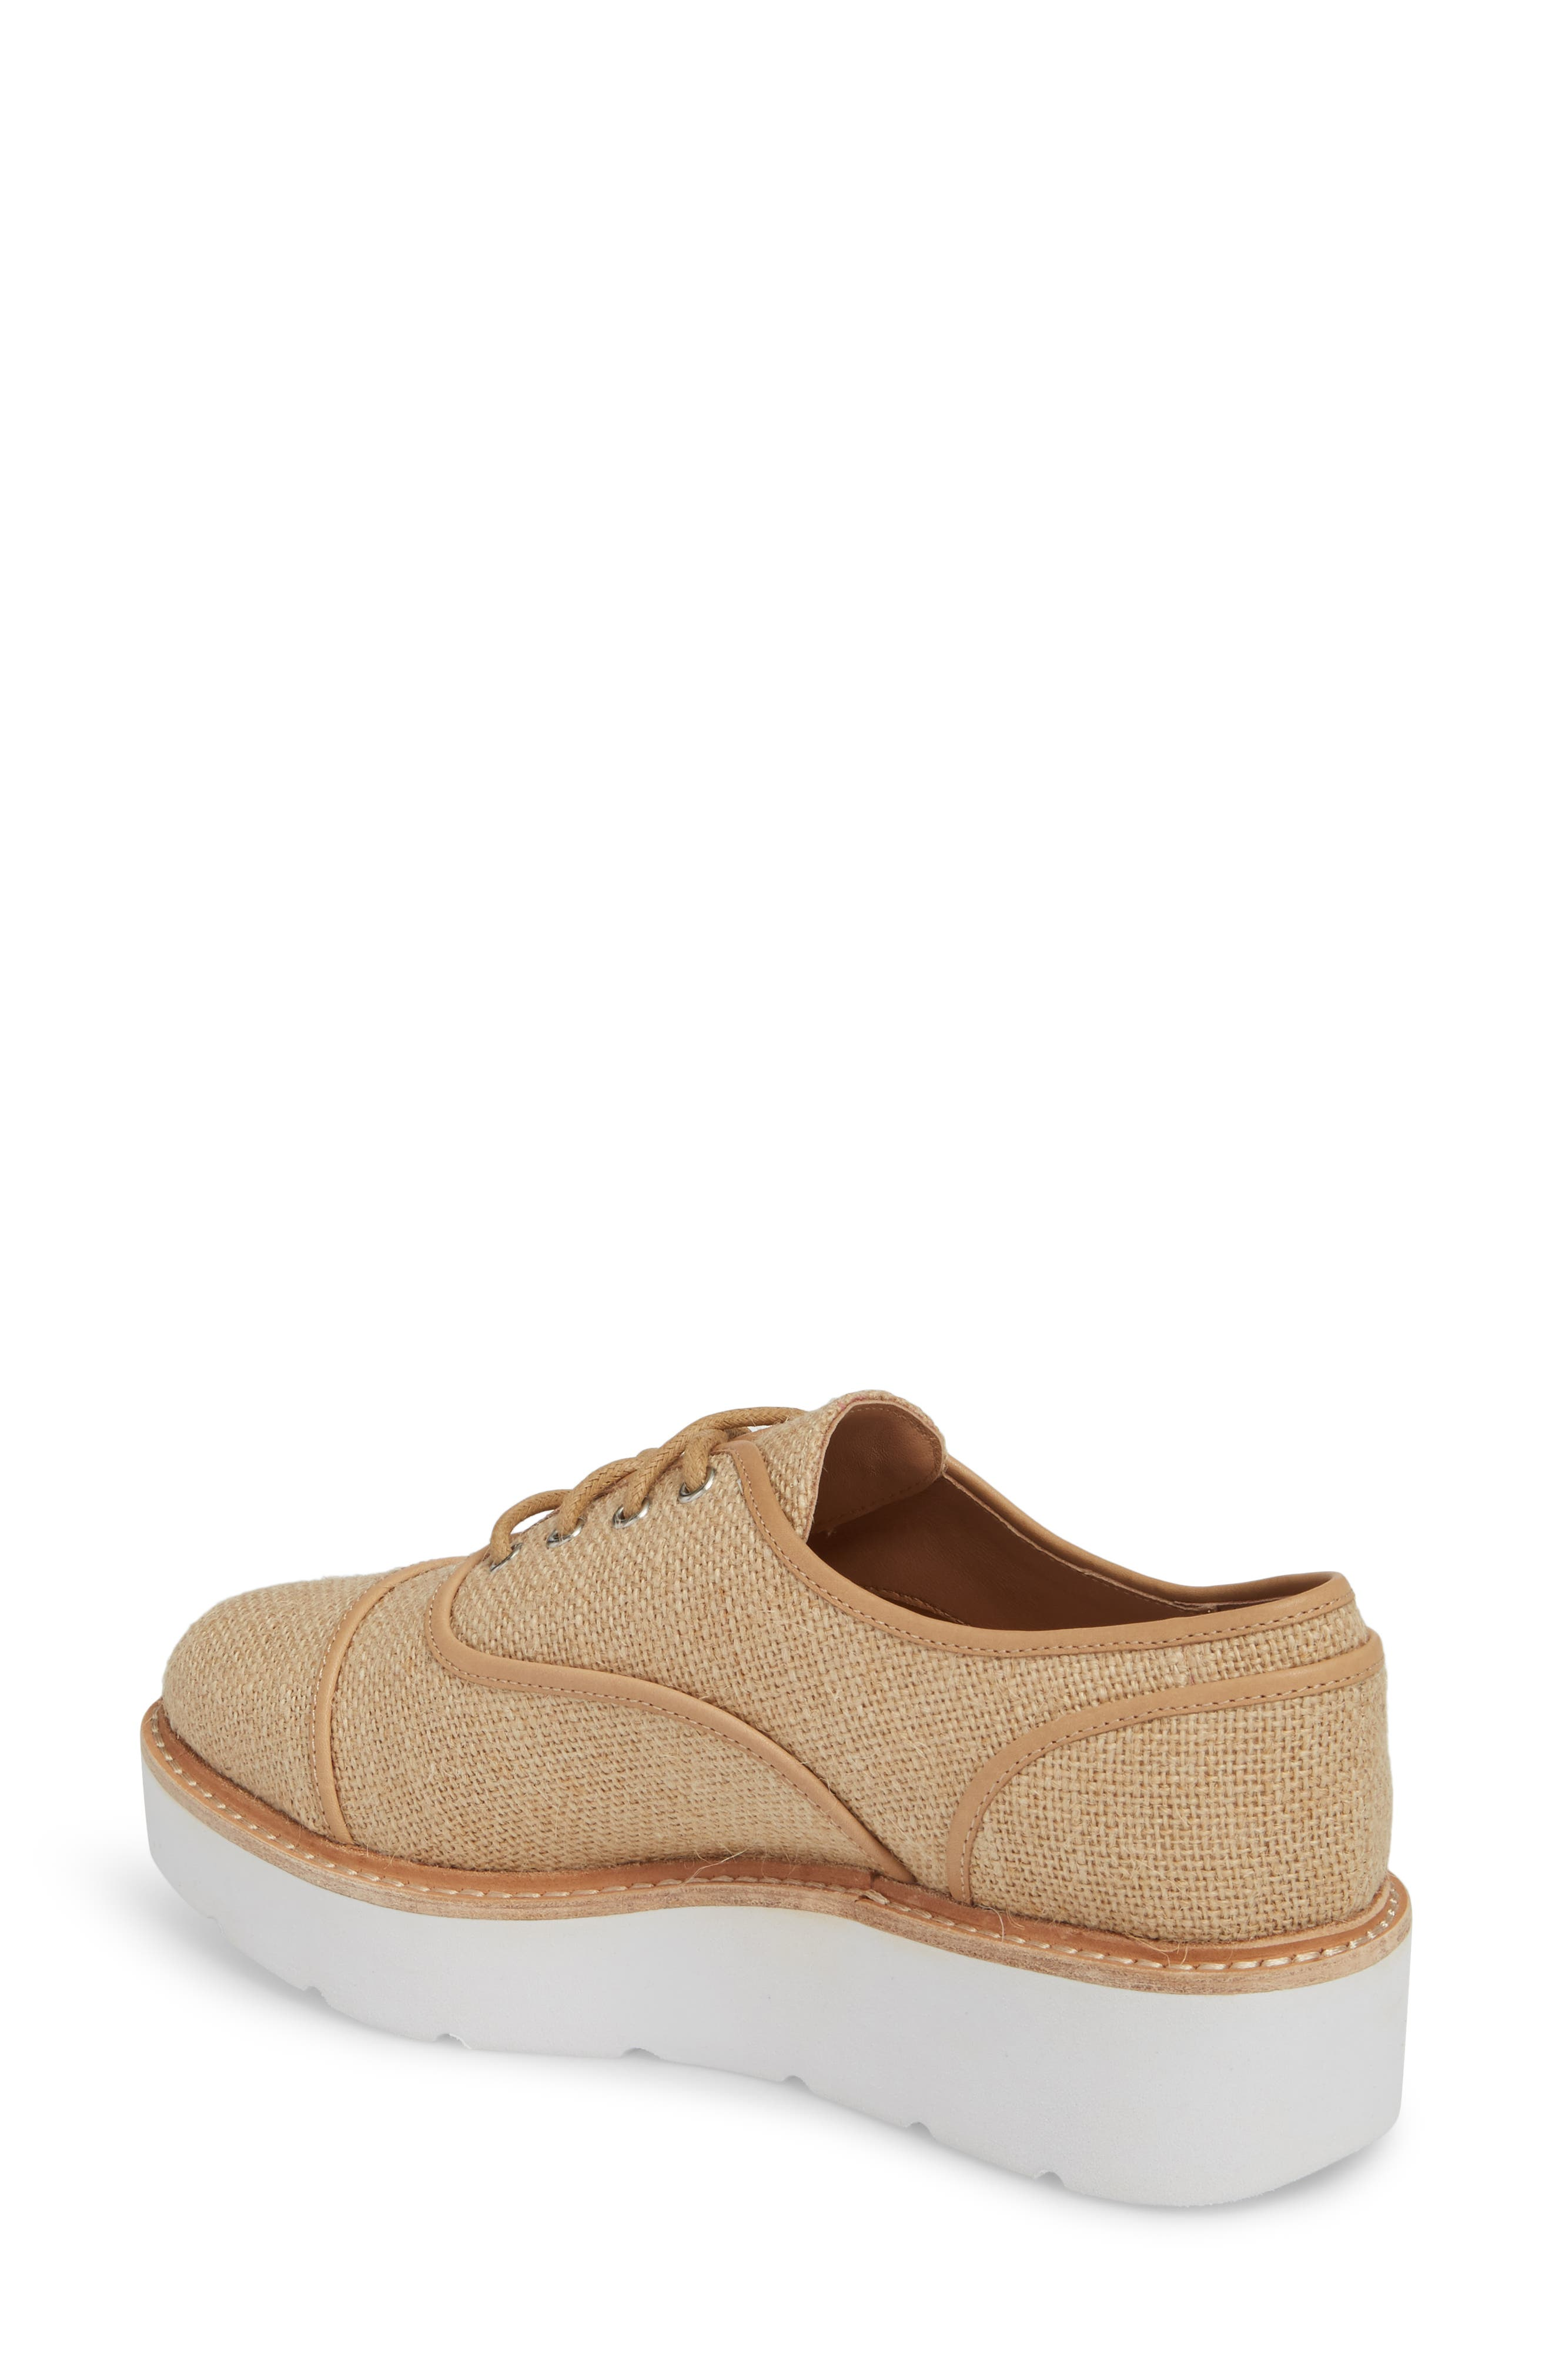 Mavis Cap Toe Platform Sneaker,                             Alternate thumbnail 2, color,                             250